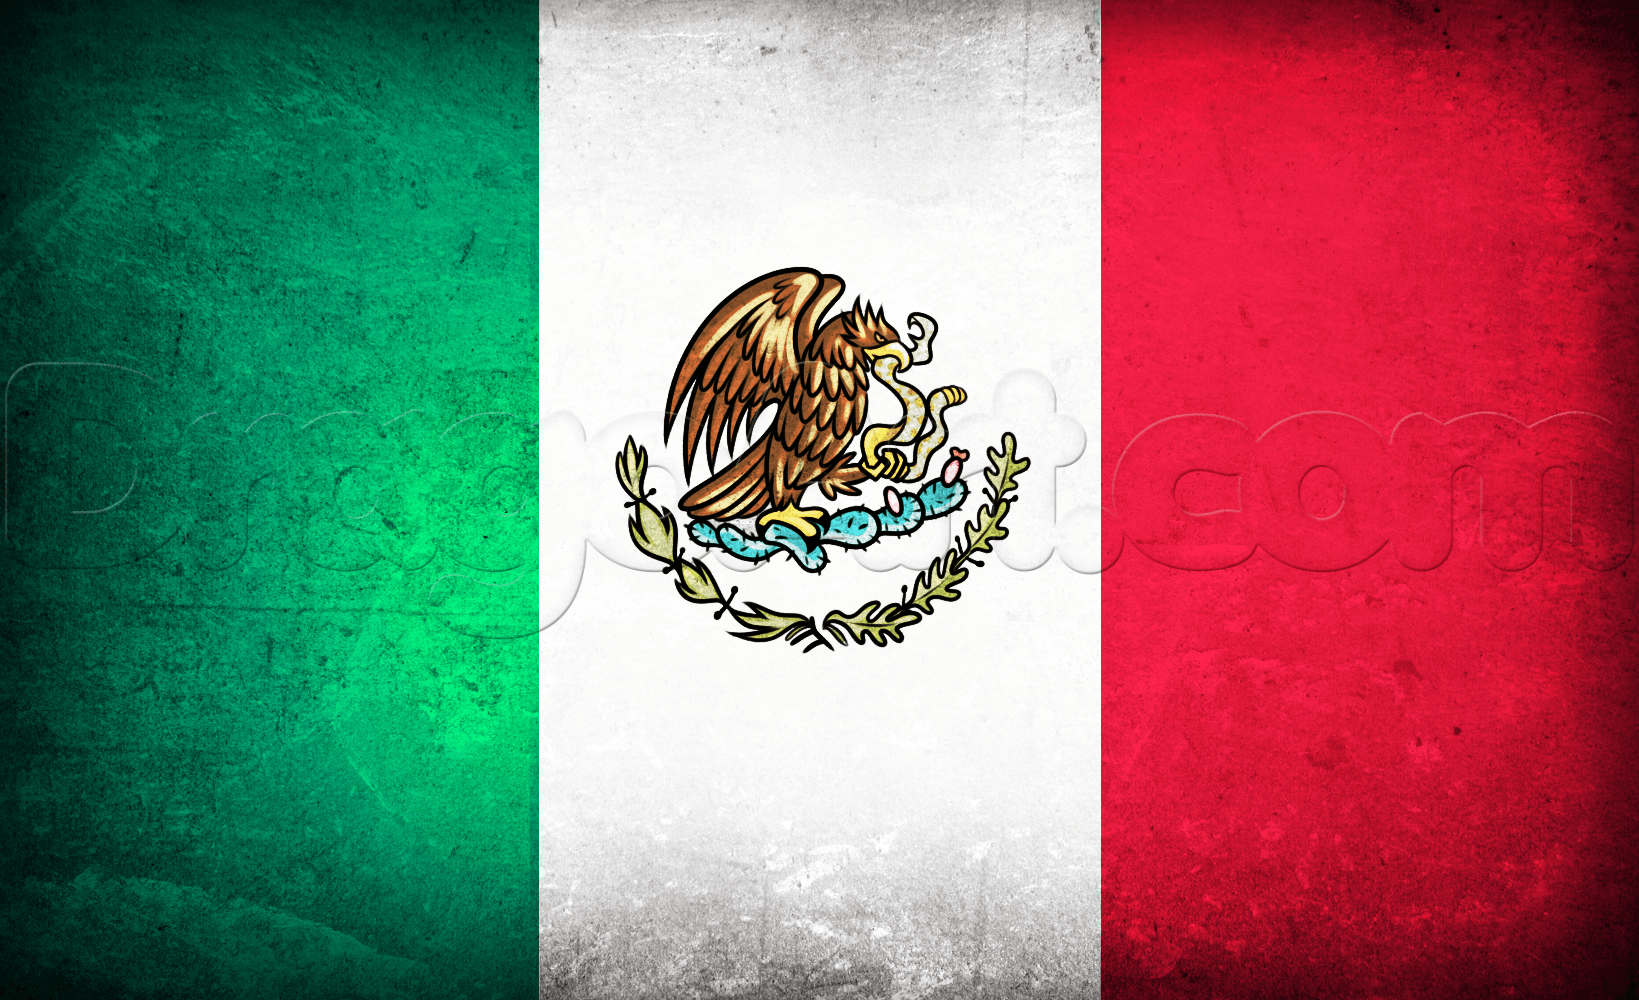 Pioneering Mexico Pictures Flag HD Wallpaper Backgrounds Image Viva